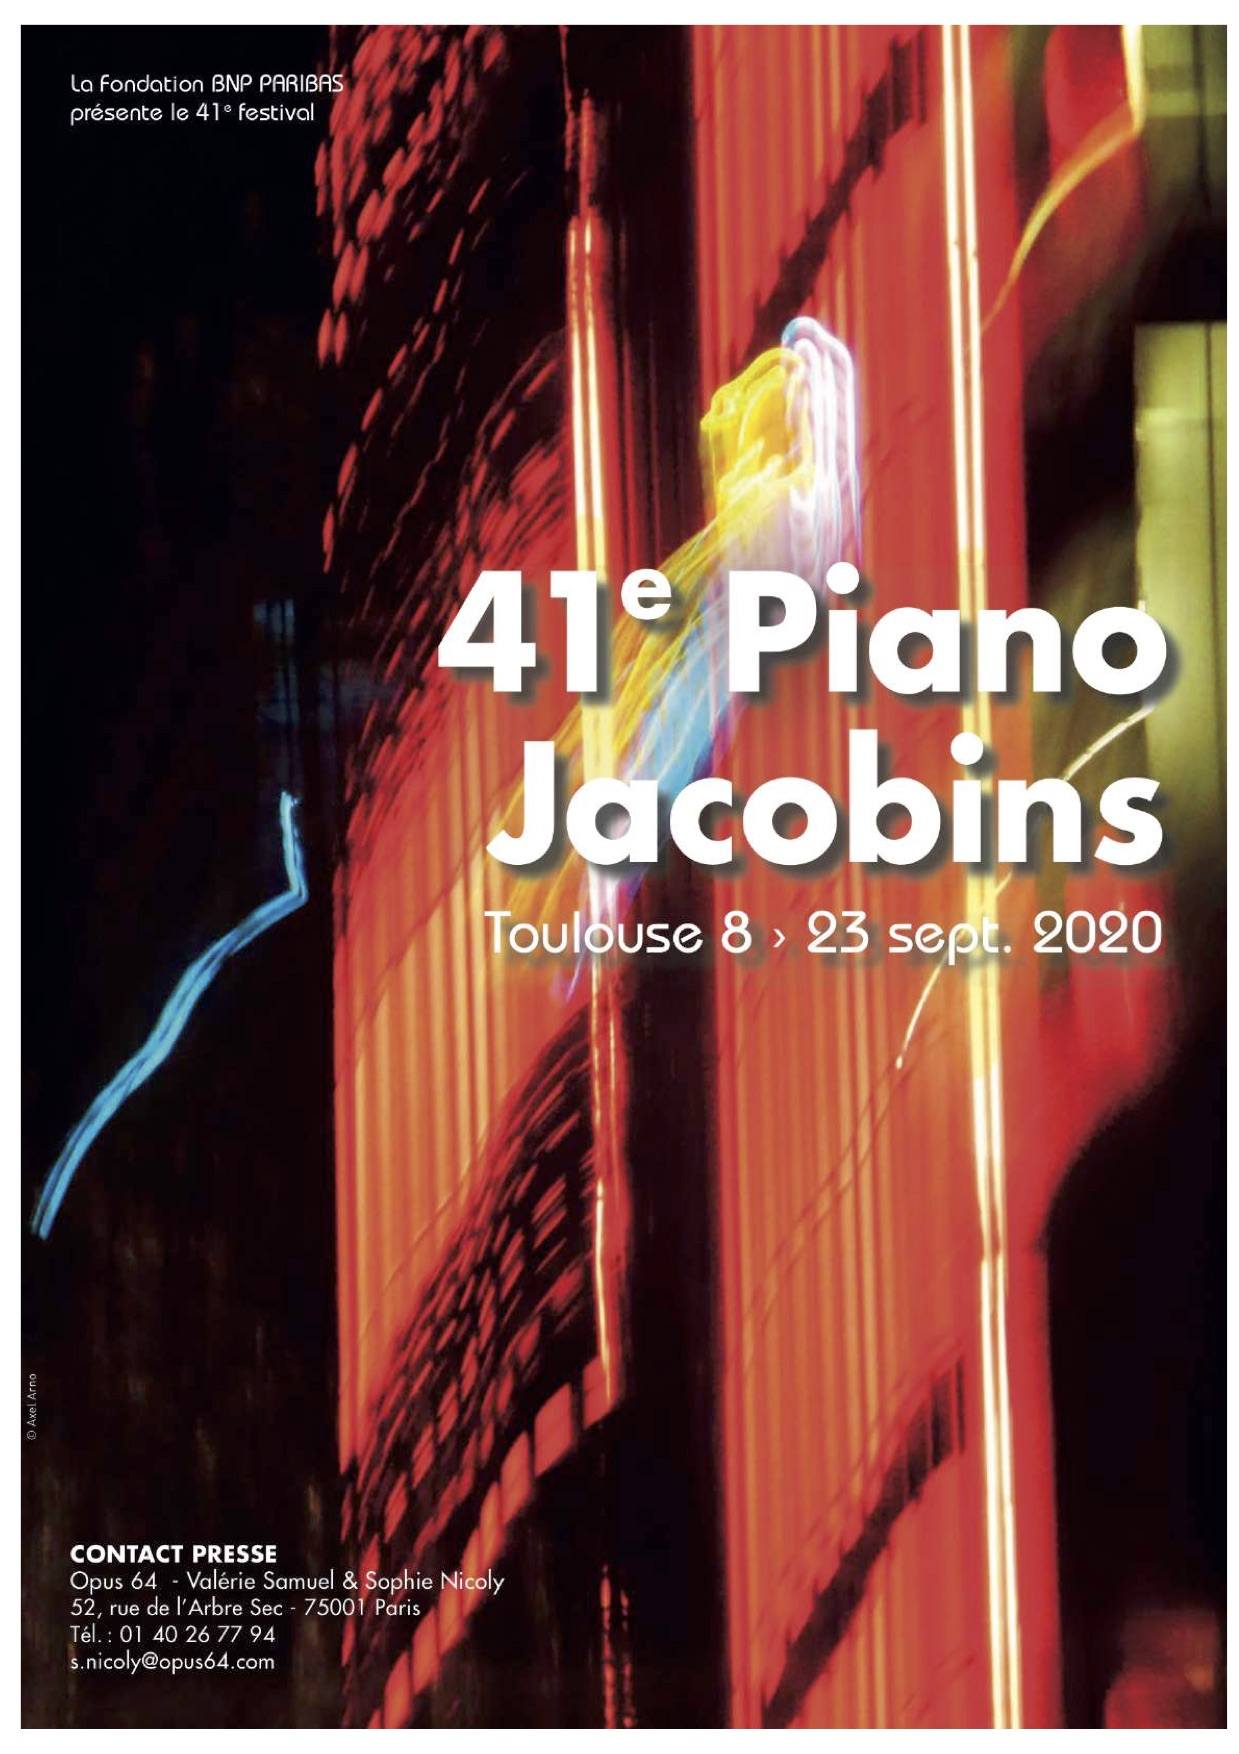 Archivé: FESTIVAL PIANO AUX JACOBINS